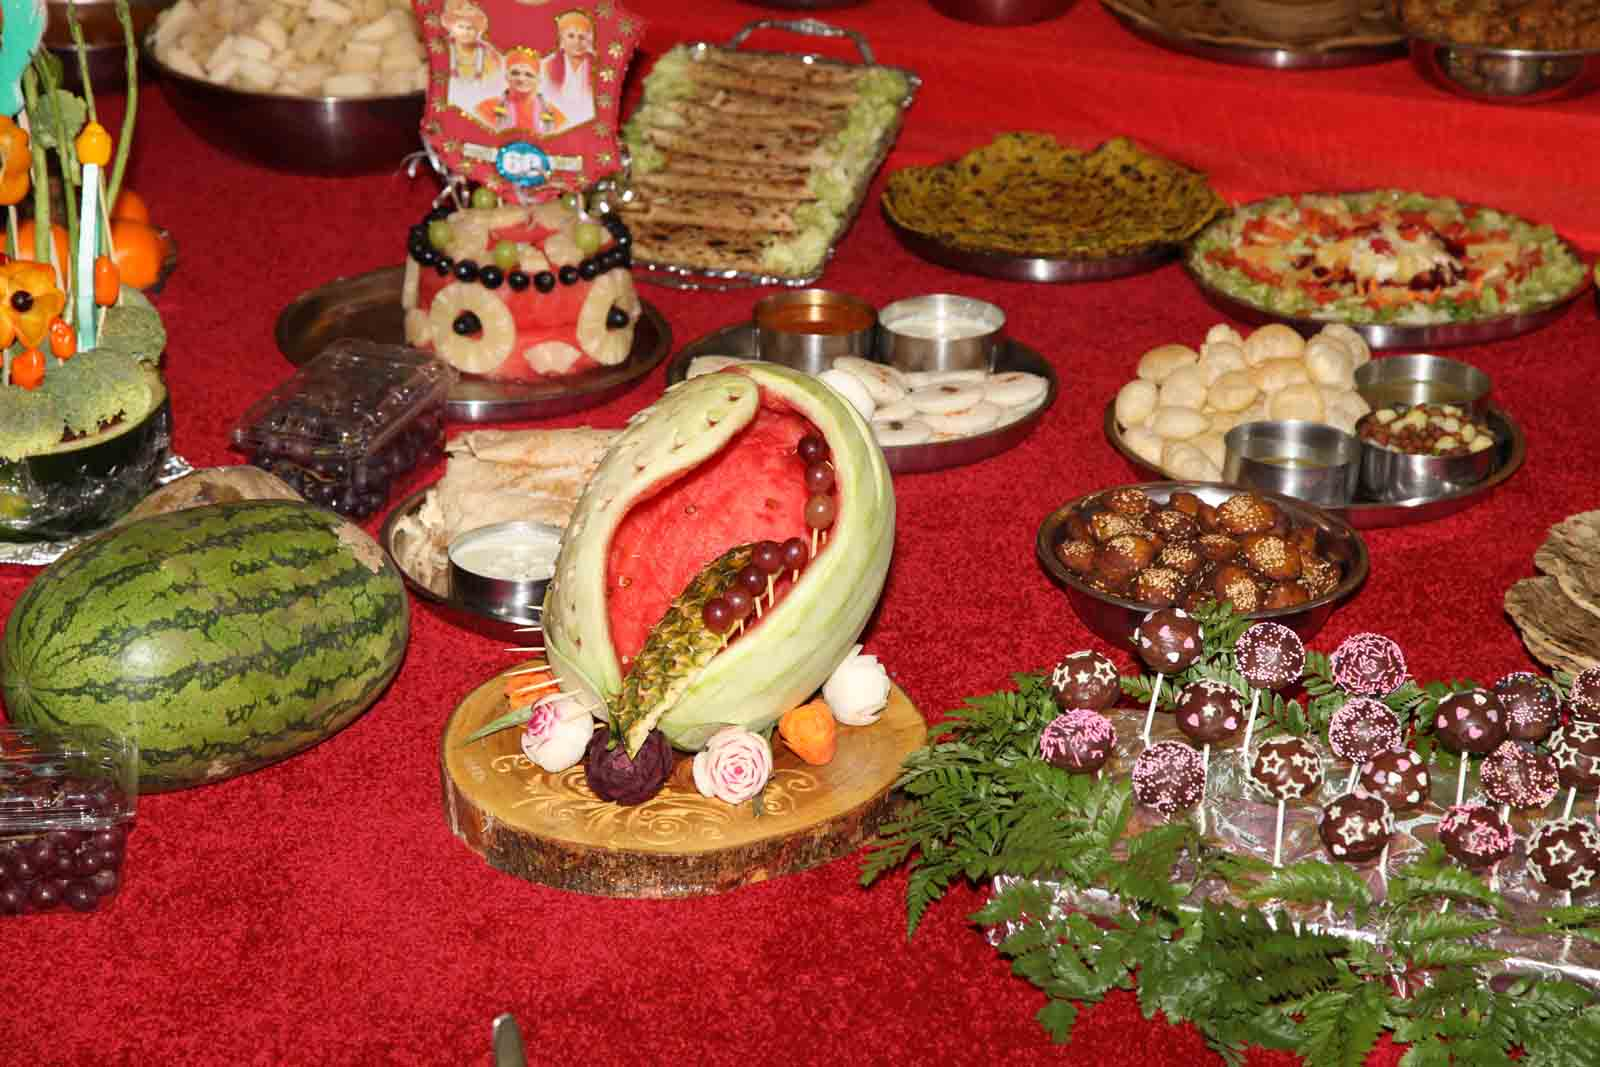 One of the many characters crafted using various fruits and vegetables by talented Sants and devotees